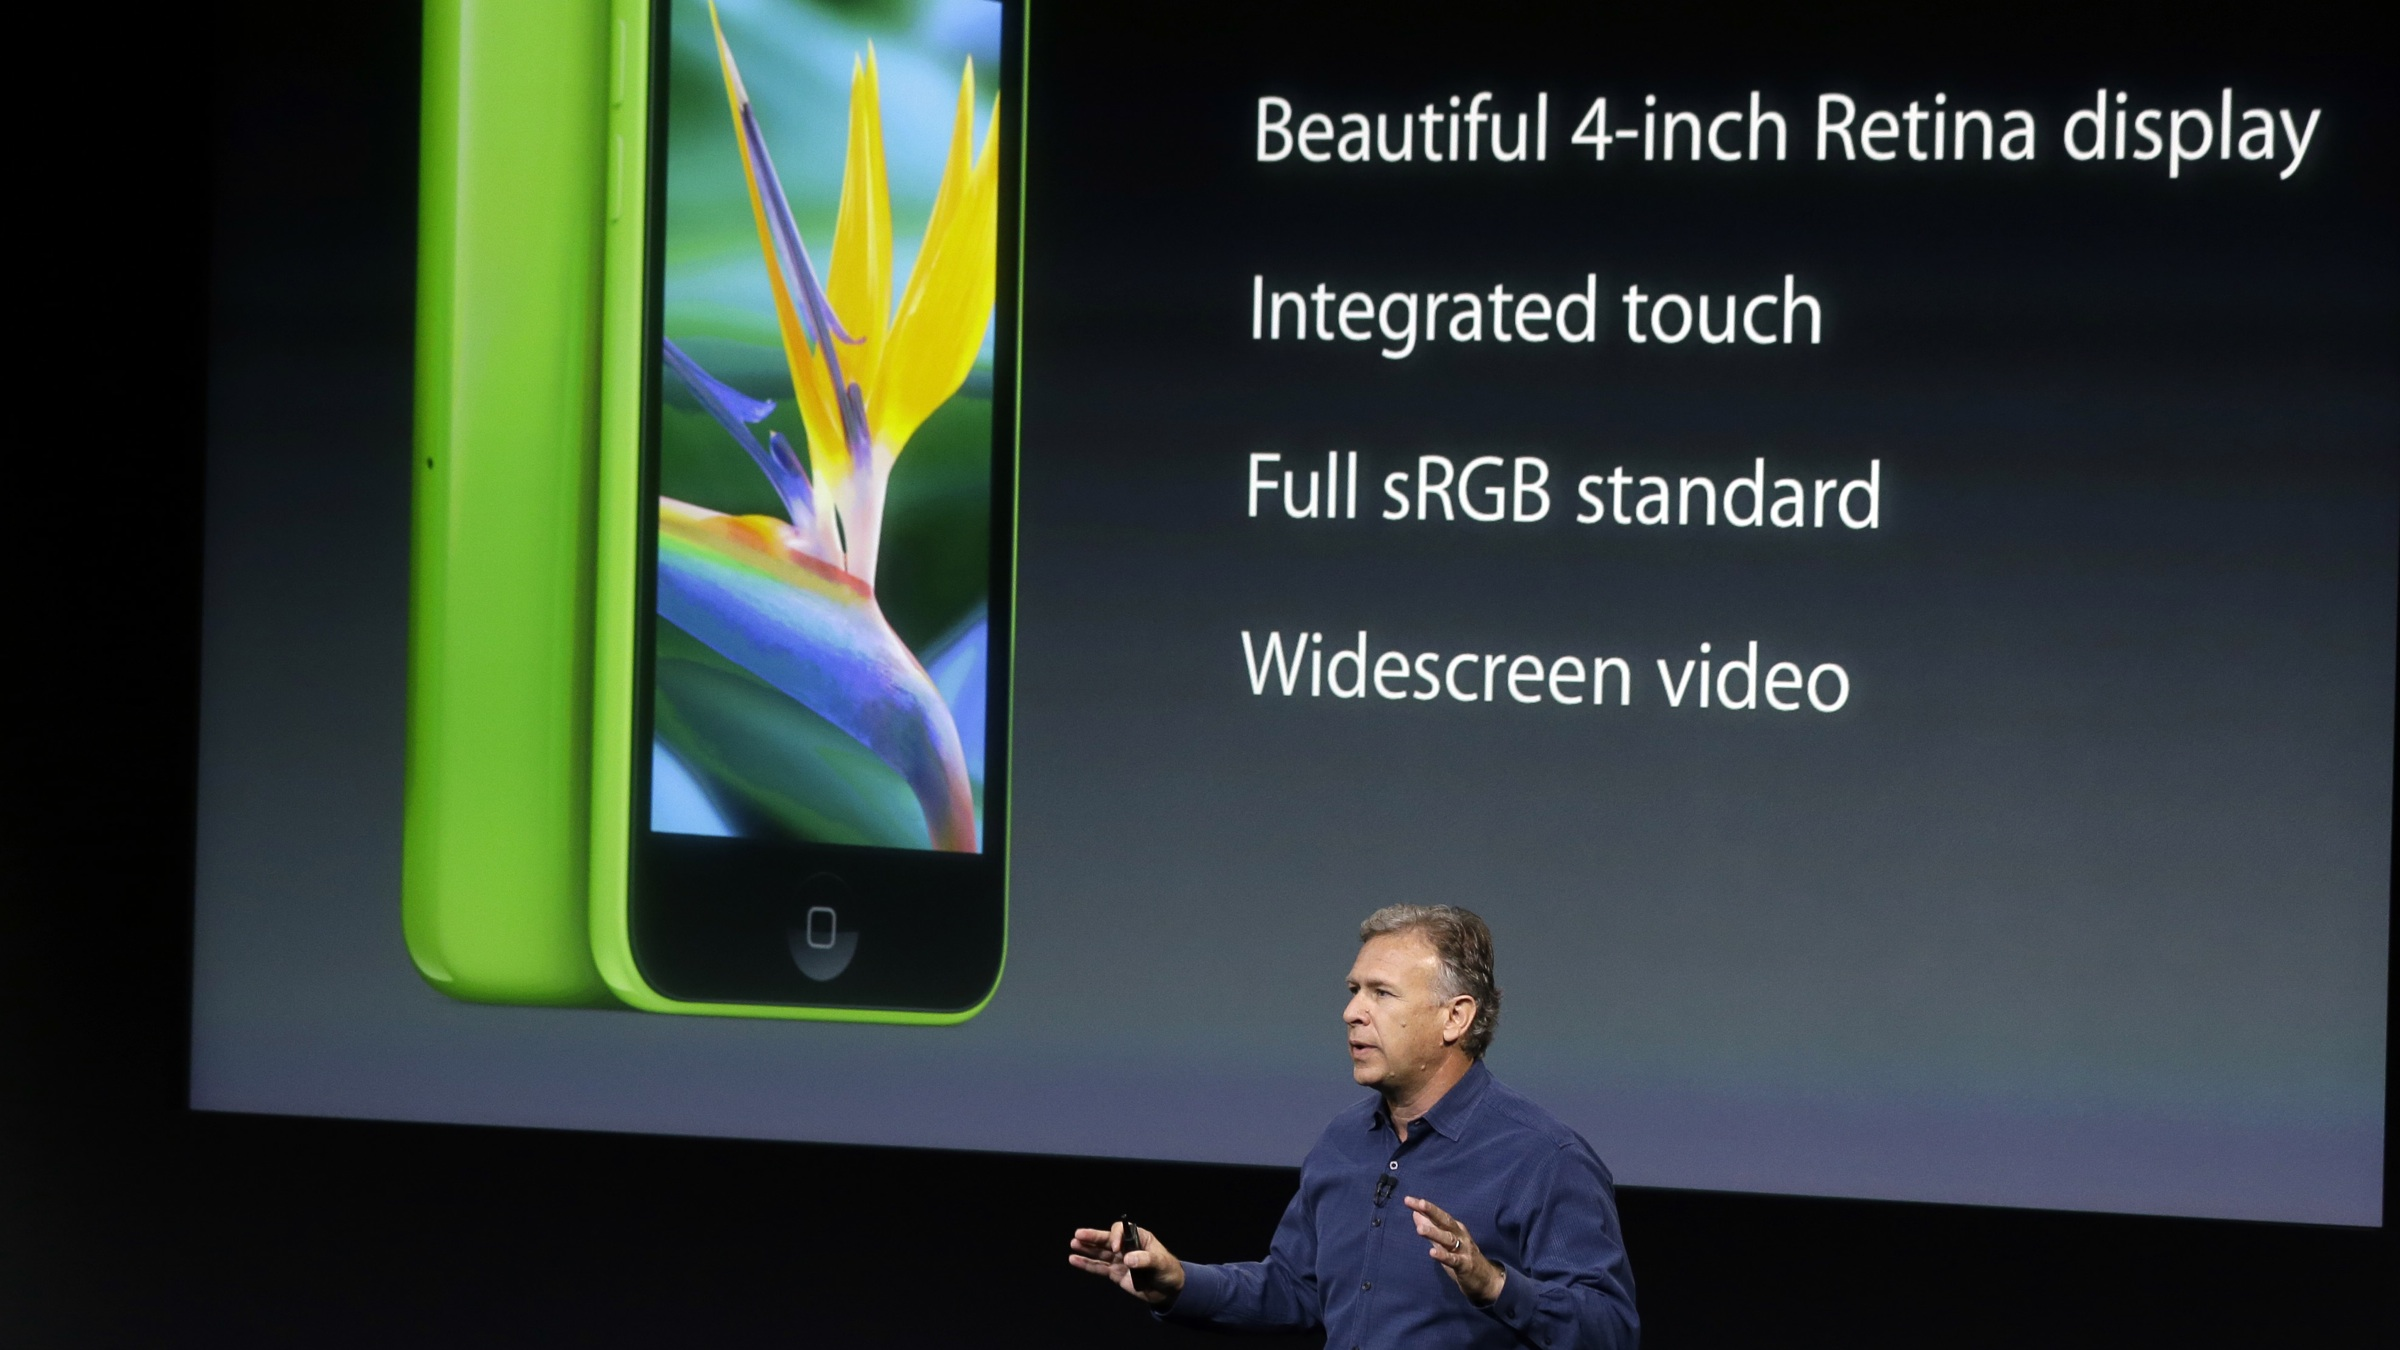 Phil Schiller, Apple's senior vice president of worldwide product marketing, speaks on stage during the introduction of the new iPhone 5c in Cupertino, Calif., Tuesday, Sept. 10, 2013. (AP Photo/Marcio Jose Sanchez)